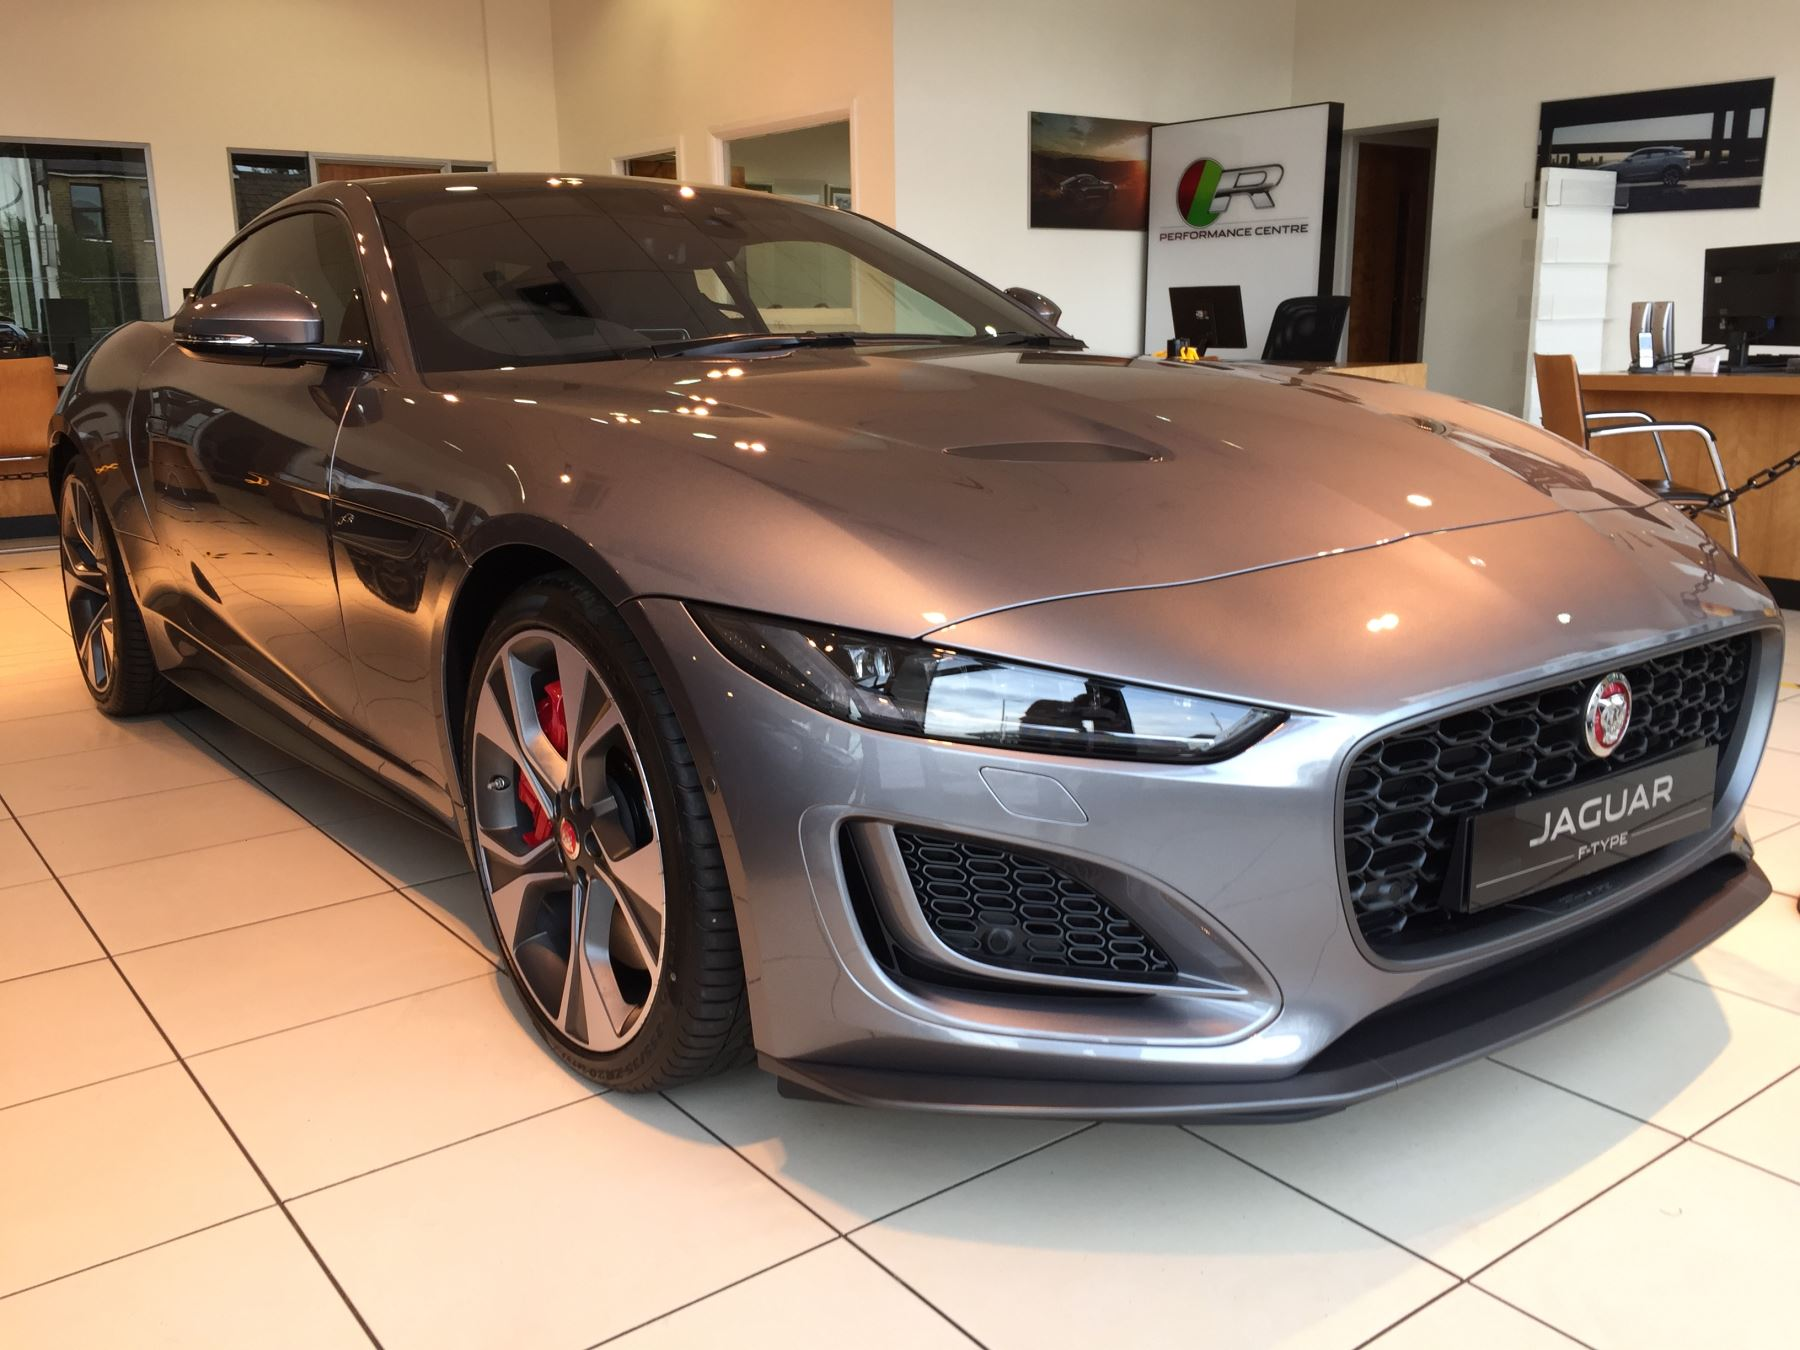 Jaguar F-TYPE 5.0 P450 Supercharged V8 First Edition SPECIAL EDITIONS Automatic 2 door Coupe